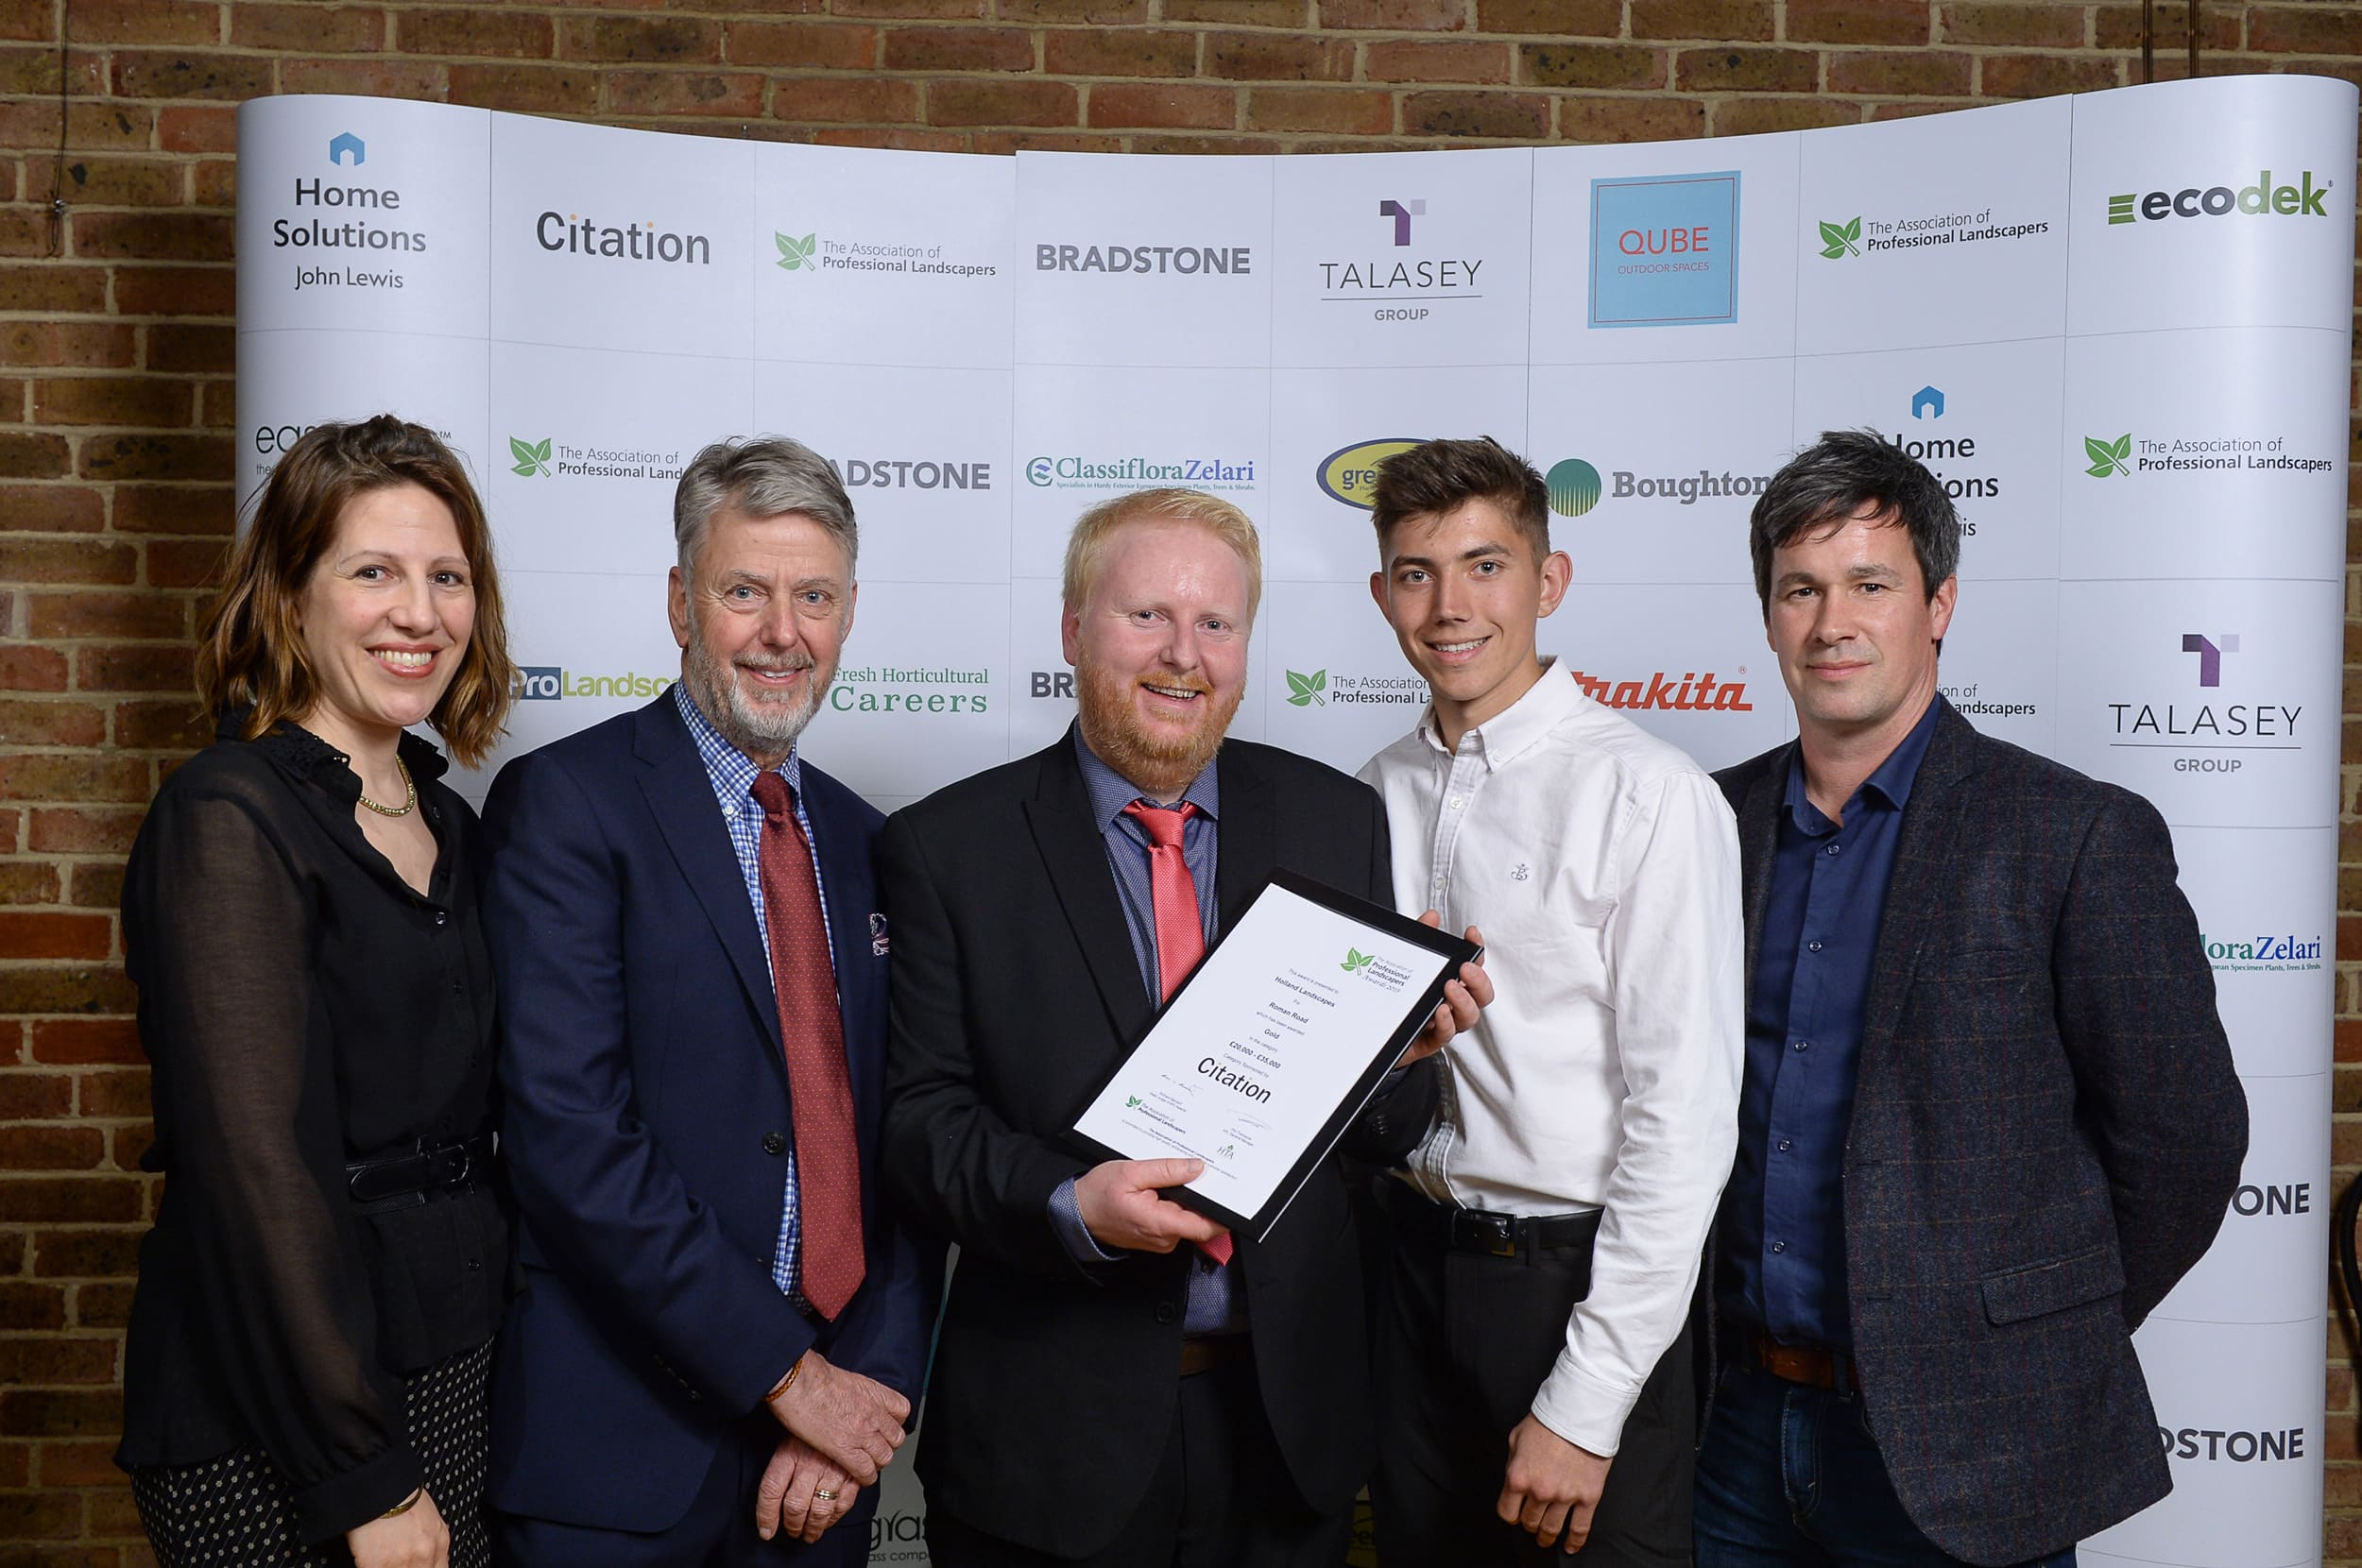 Holland Landscapes Team with one of their APL Awards 2019